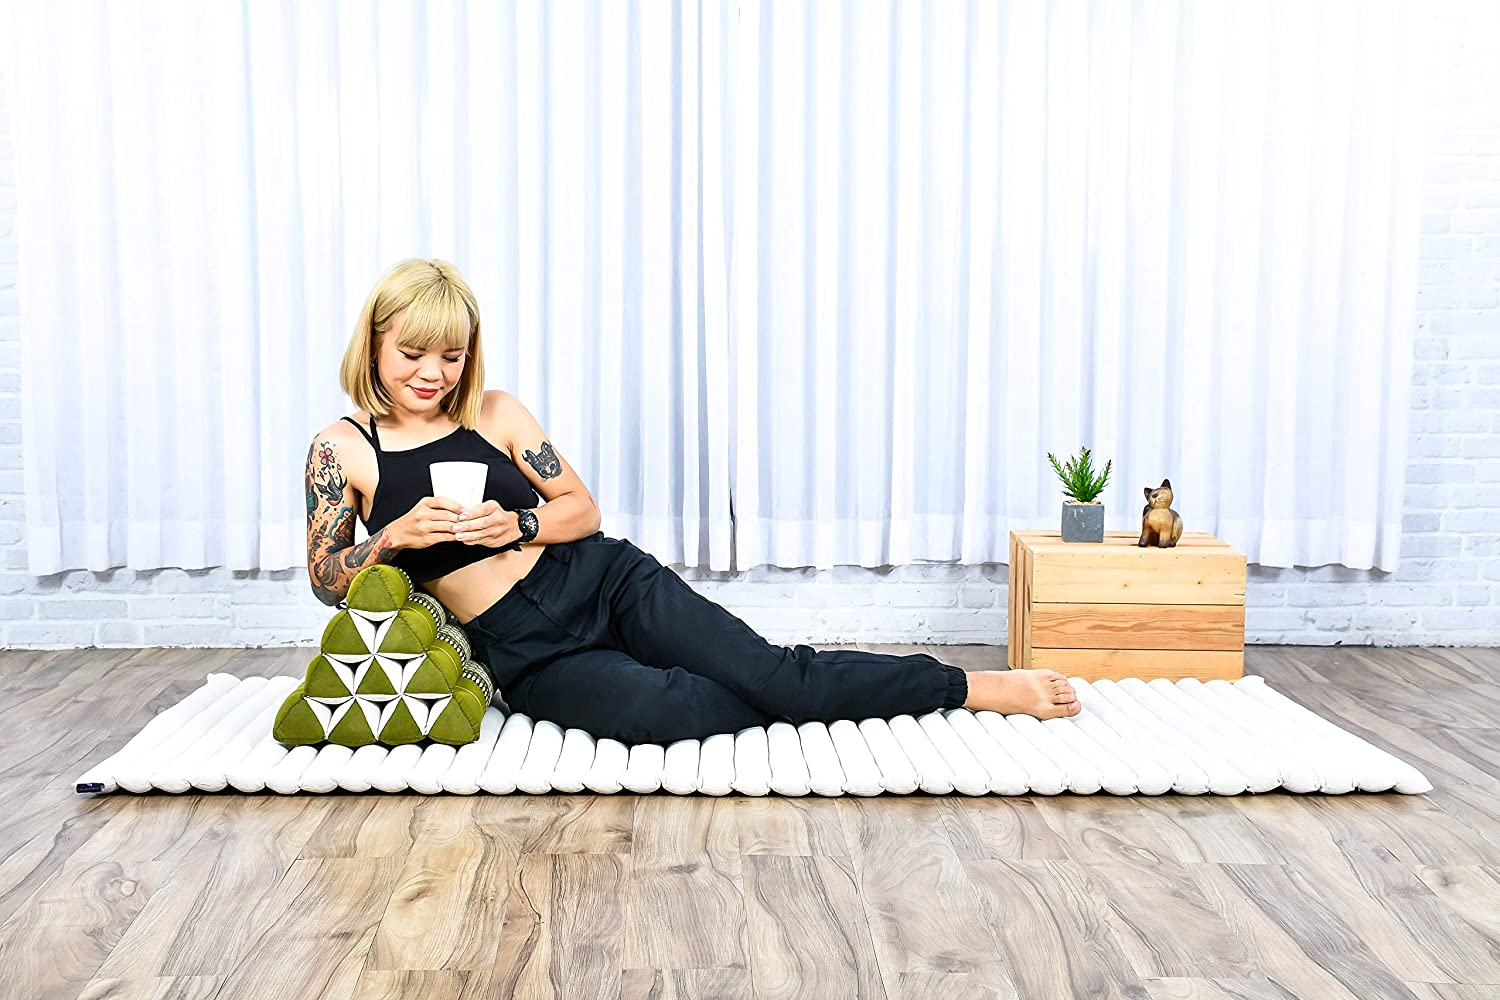 Kapok Anthracite 20x13x13 inches Leewadee Triangle Cushion Reading Pillow Backrest TV Pillow Eco-Friendly Organic and Natural